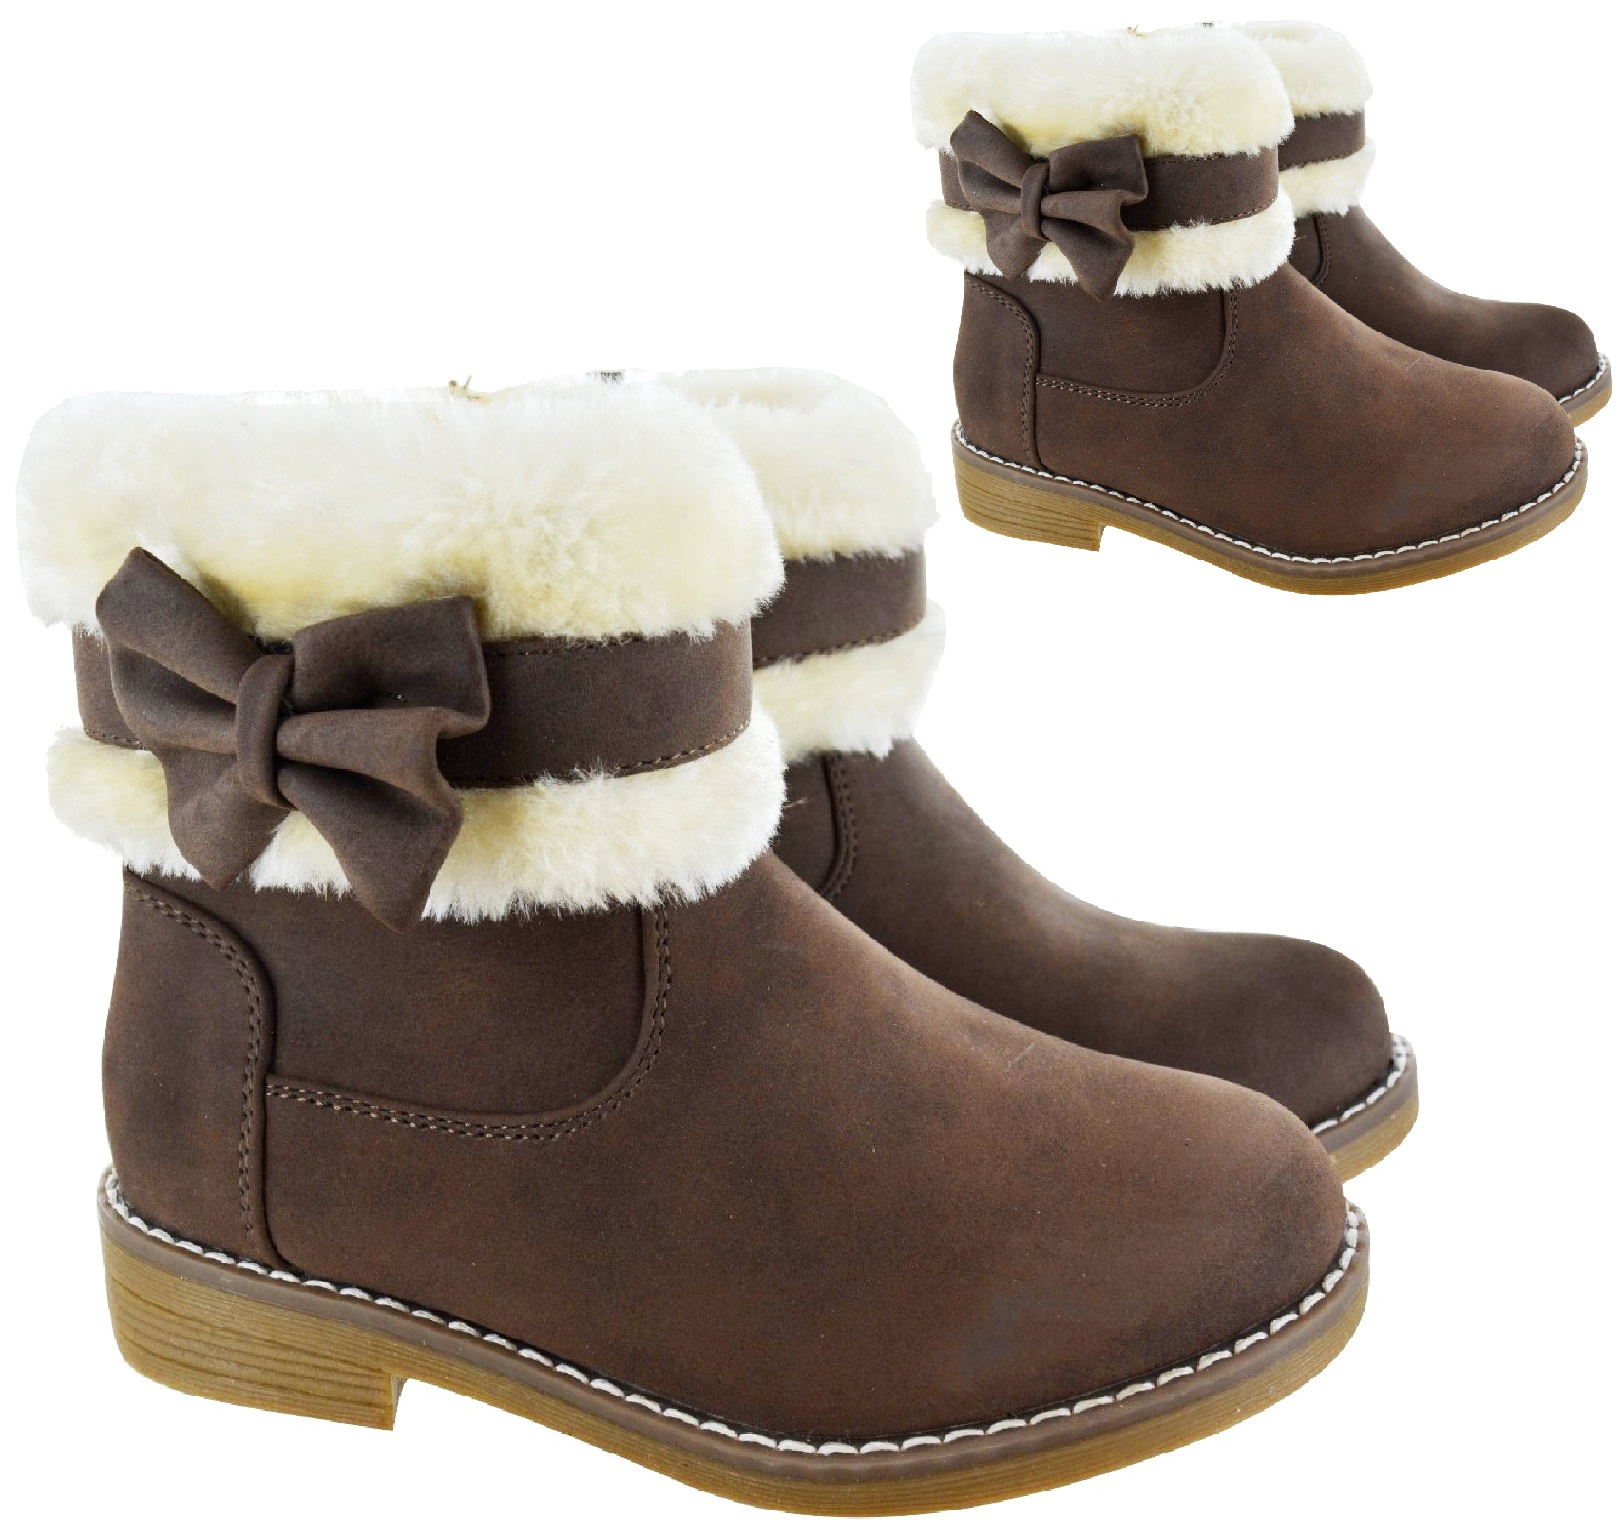 GIRLS COMFY SCHOOL WINTER WARM FAUX FUR LINED ANKLE BOOTS CHILDRENS SHOES SIZE